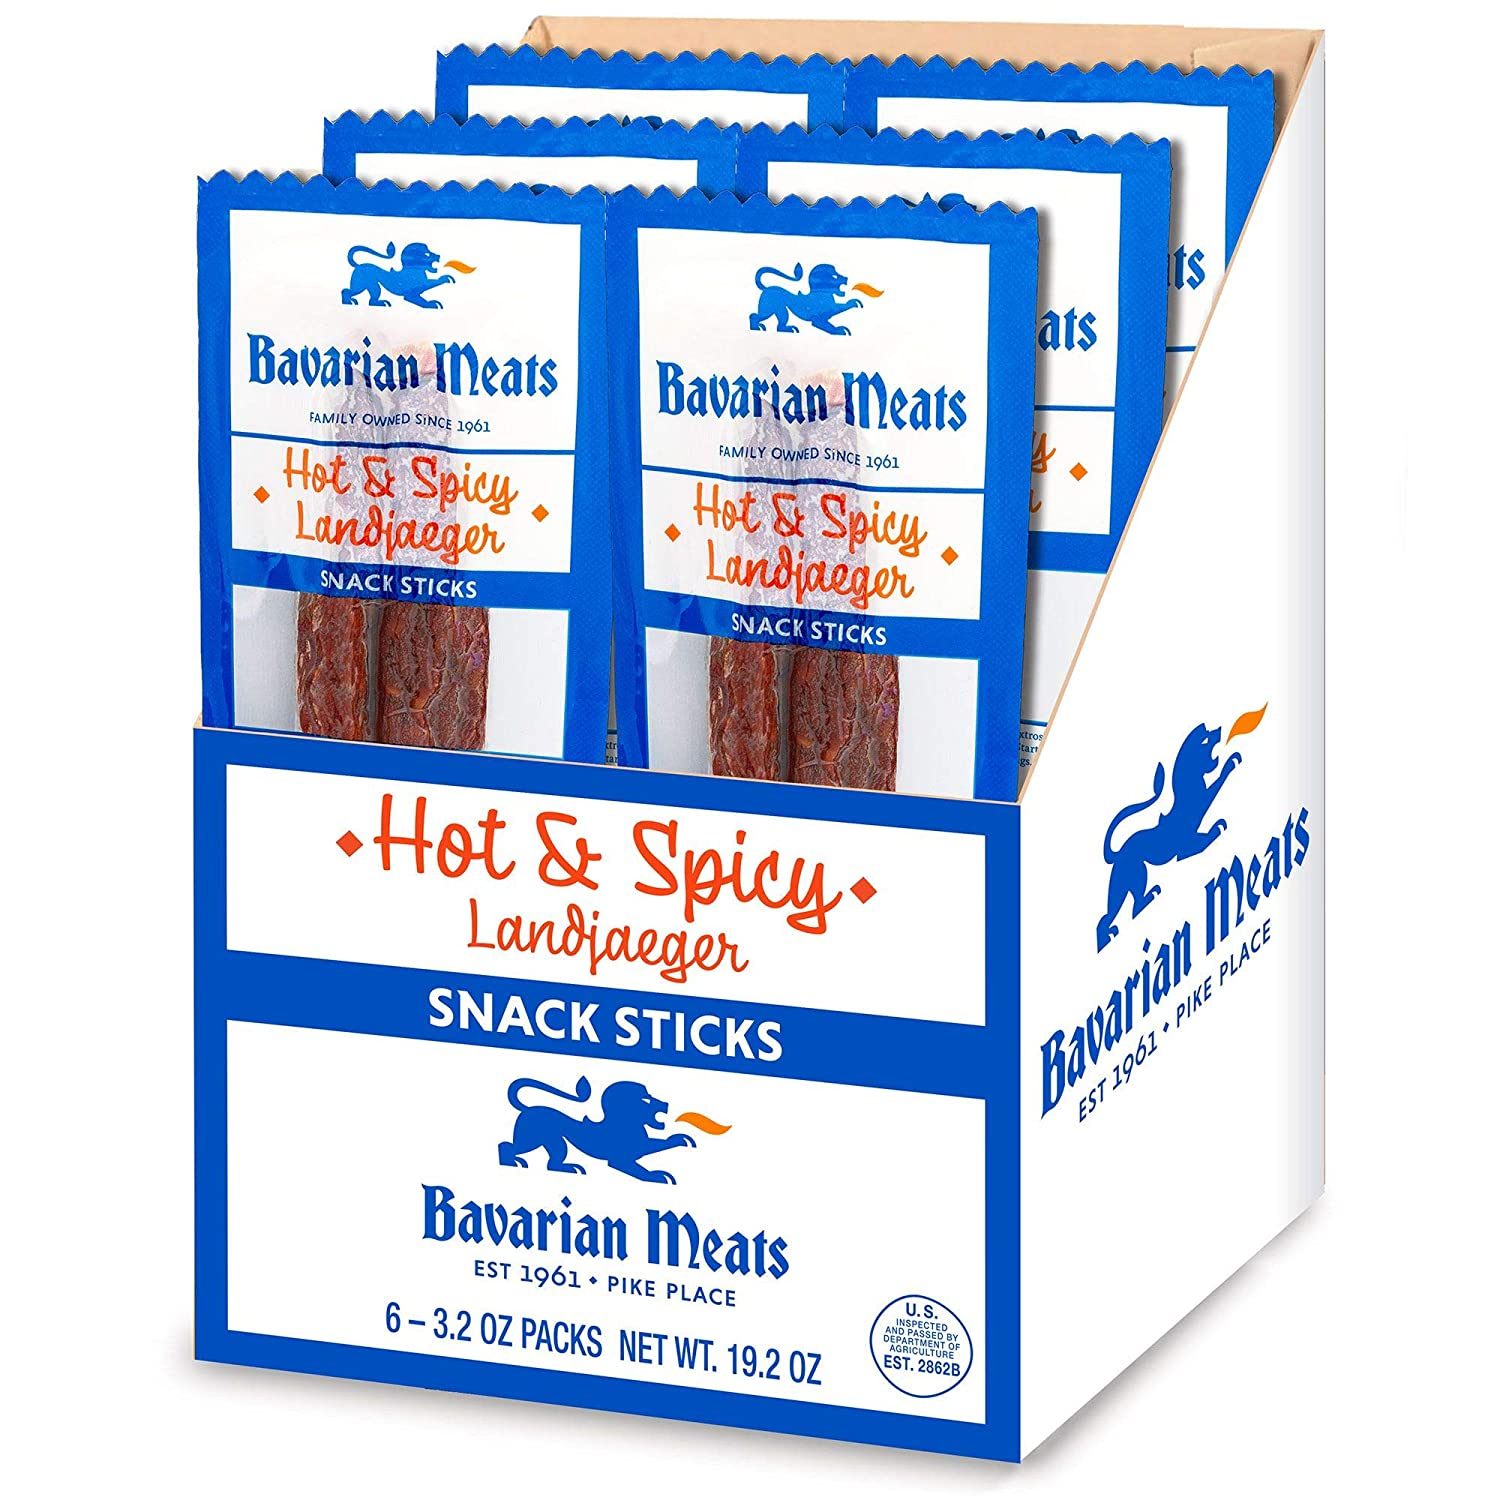 Bavarian Meats Hot & Spicy Landjaeger German Style Smoked Sausage Snack Sticks, 3.2 Ounce (Pack of 6)